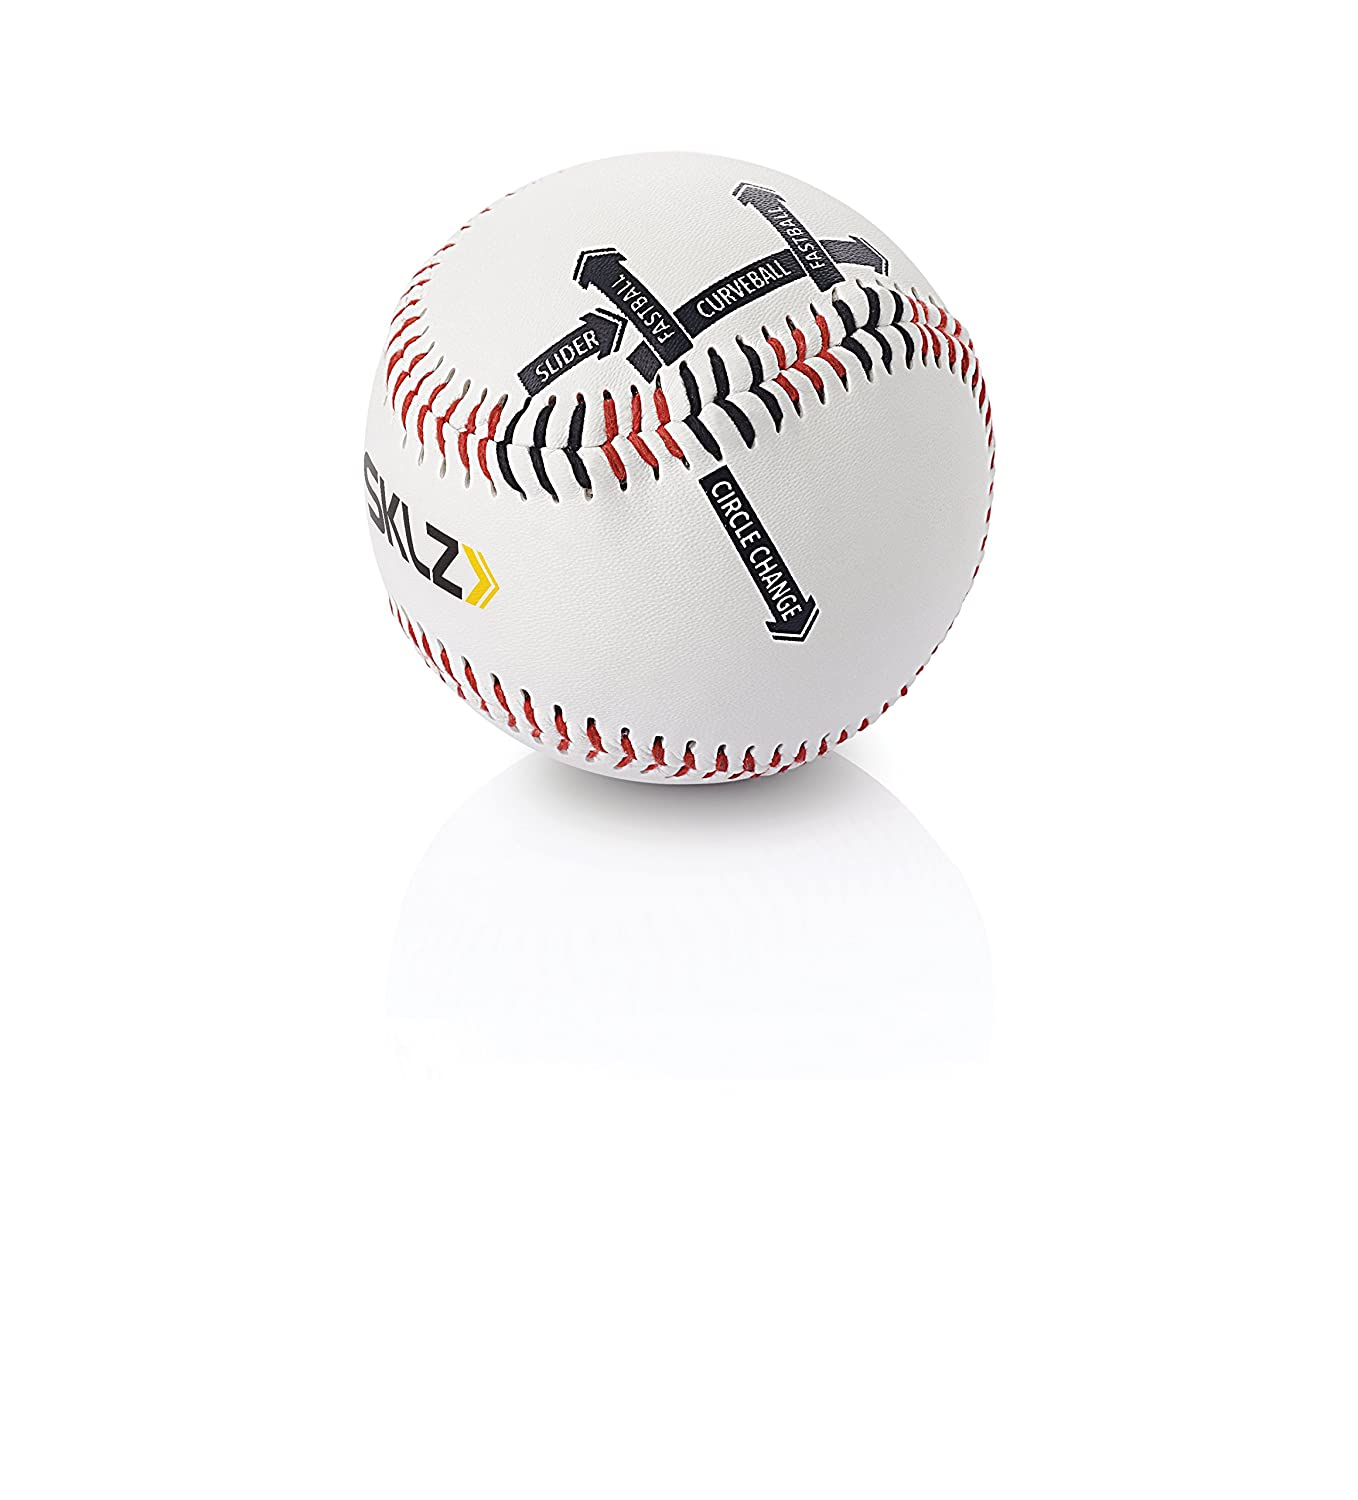 SKLZ Pitch Trainer Ball-Teaching Tool for Safe and Effective Pitching PPSTBSBL-100